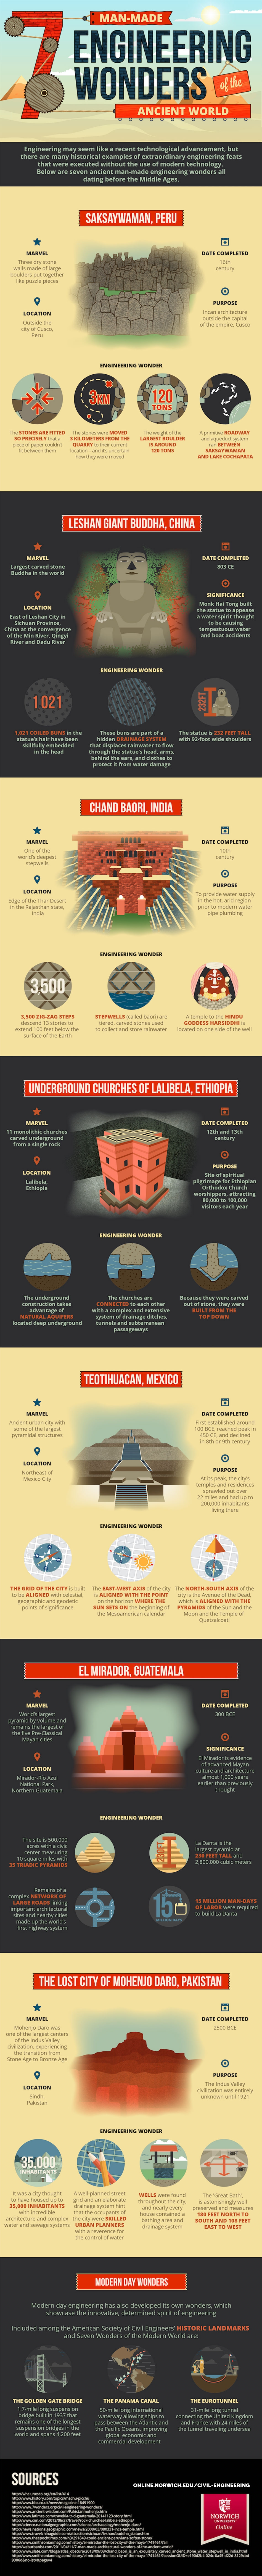 7 ancient engineering wonders infographic image